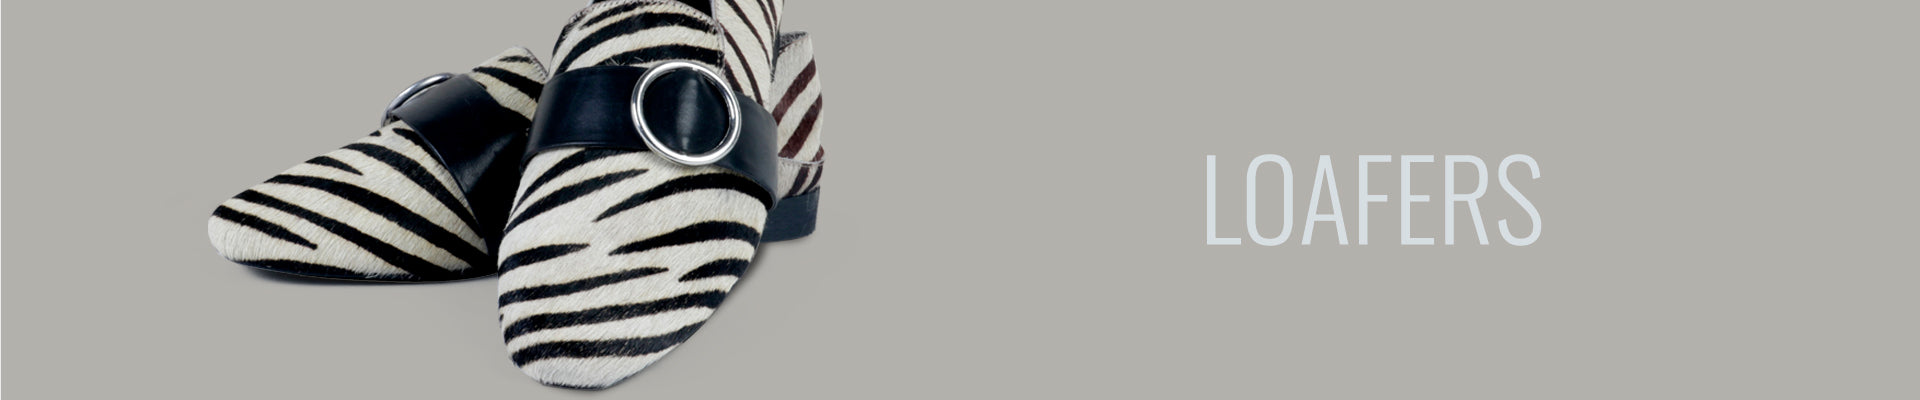 Loafers CategoryBanner